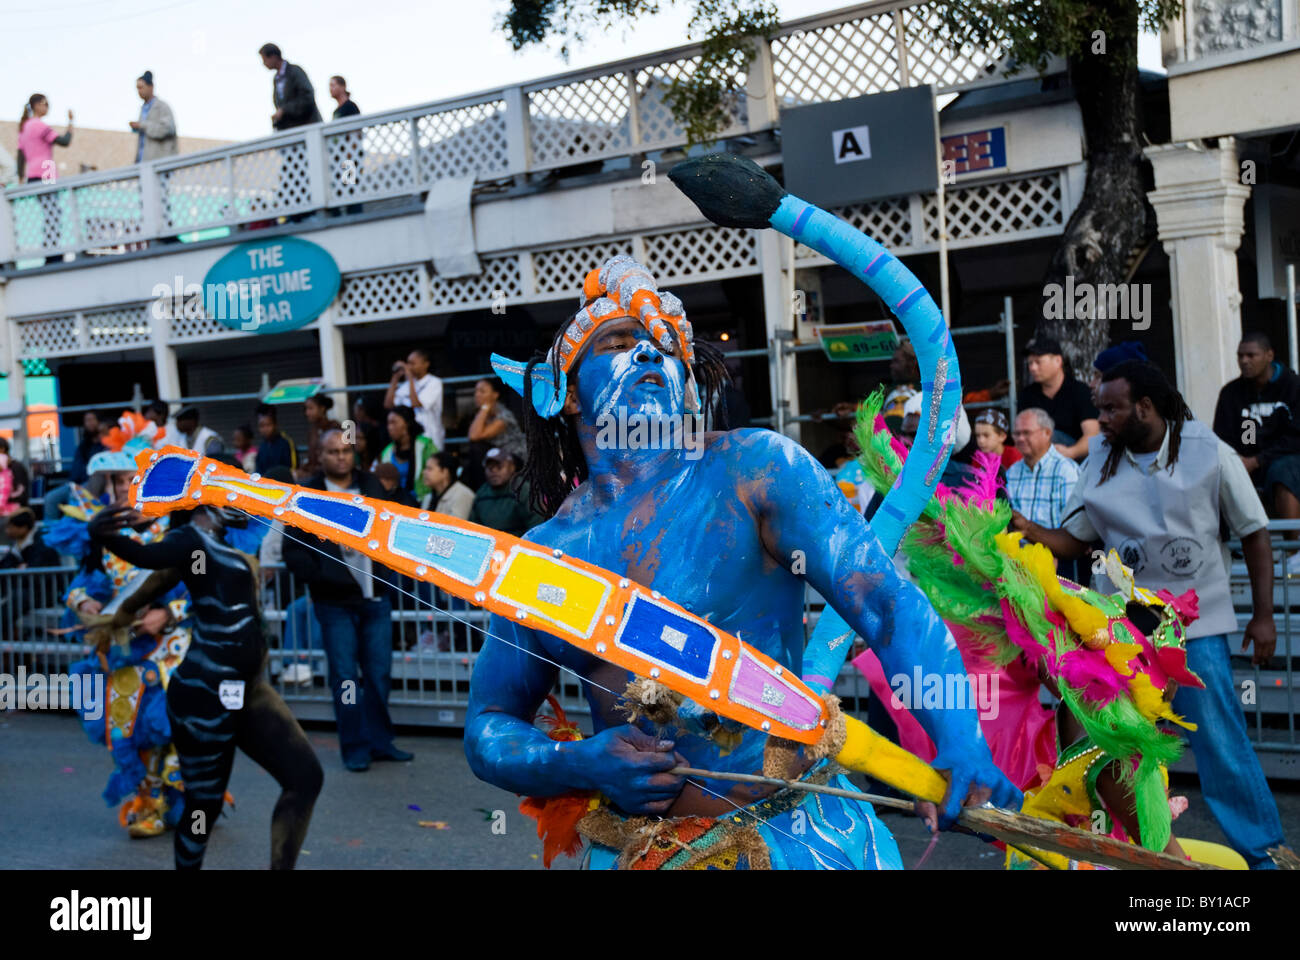 Male Dancer, Roots, Avatar, Junkanoo, New Year's Day, 2011, Nassau, Bahamas - Stock Image